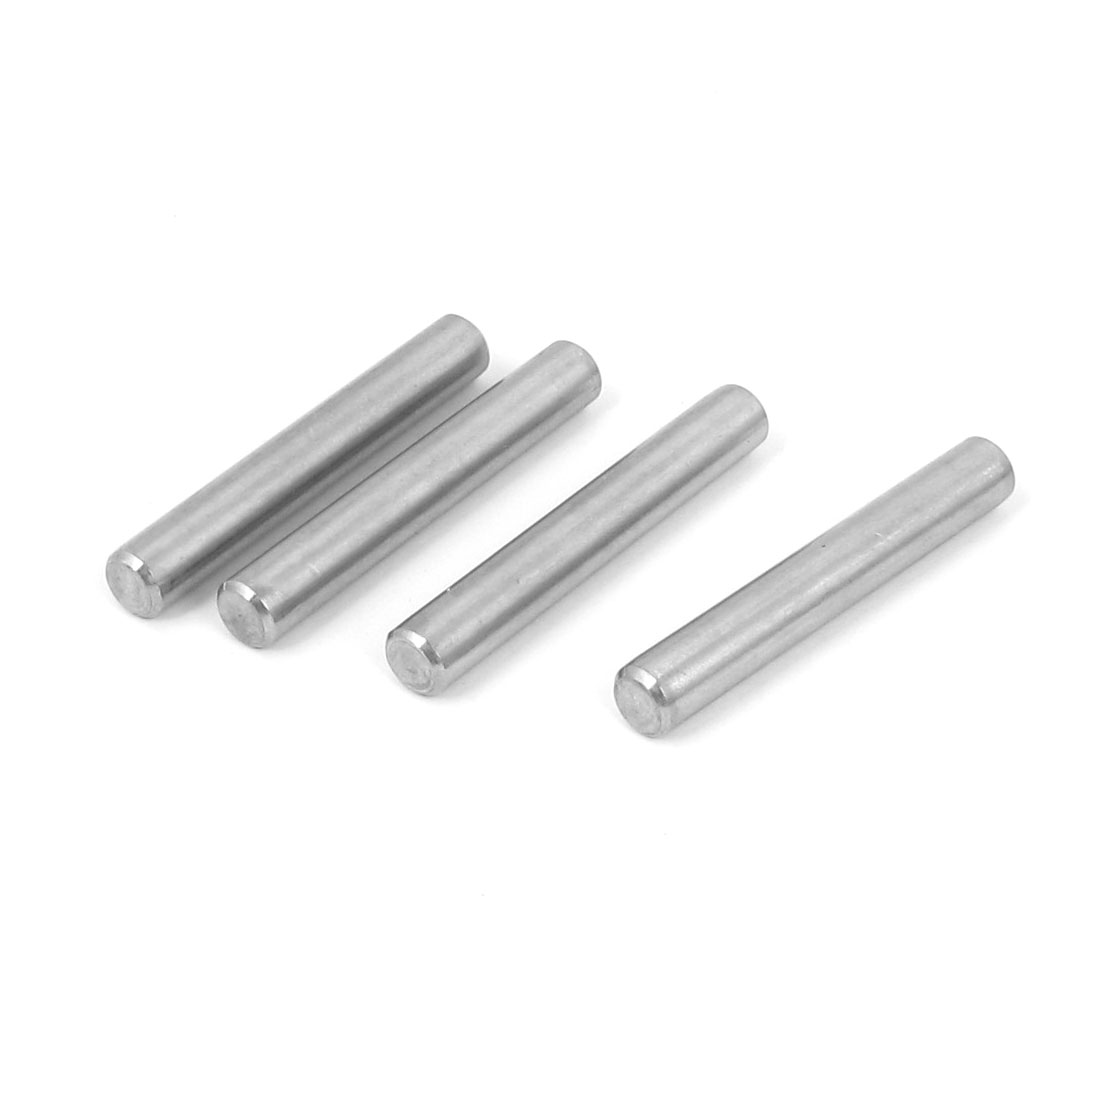 8mm x 55mm 304 Stainless Steel Dowel Pins Fasten Elements Silver Tone 4pcs